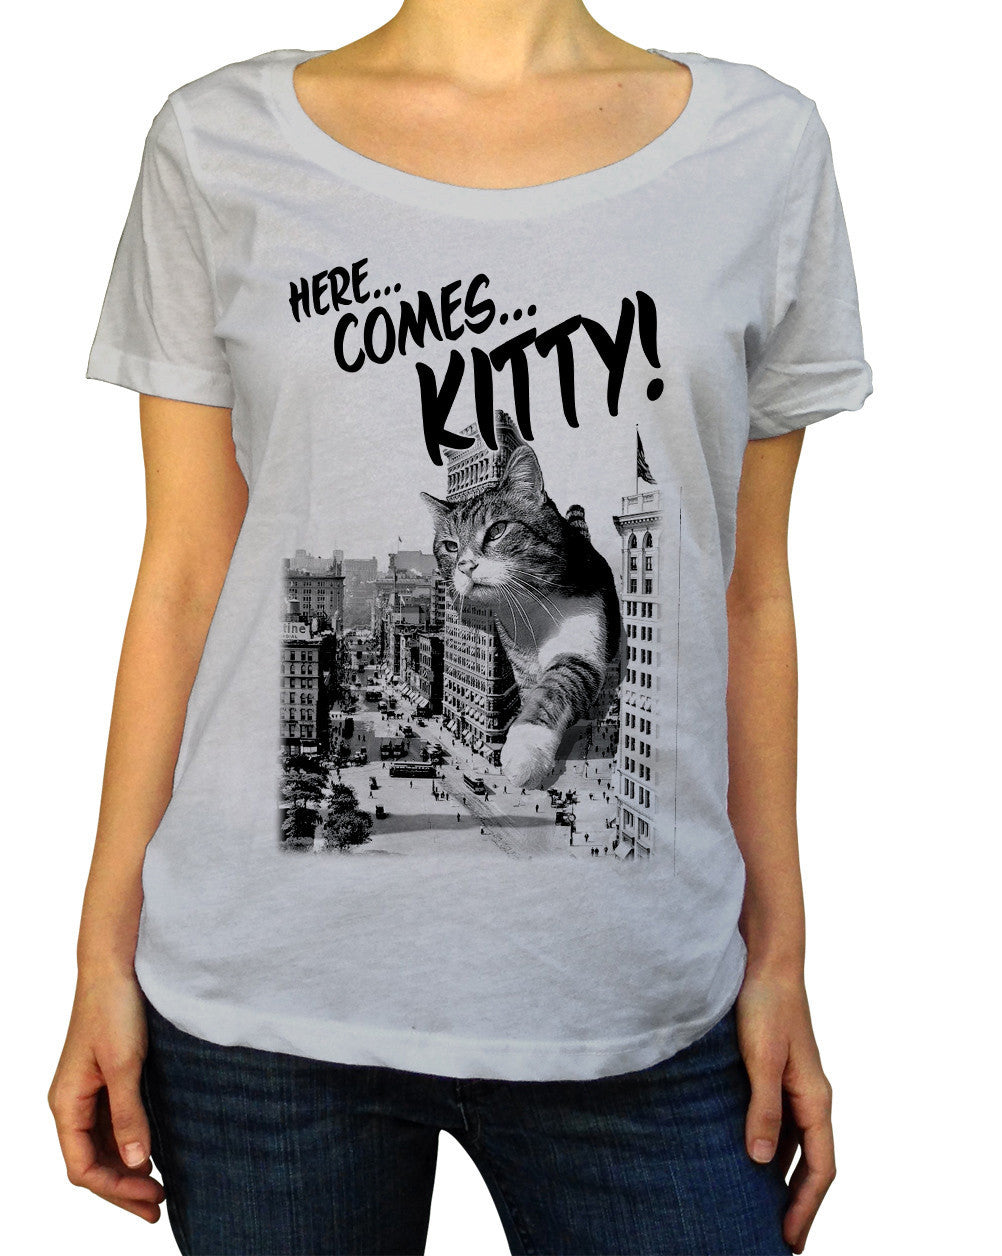 Women's Here Comes Kitty Scoop Neck Shirt Funny Giant Cat TShirt